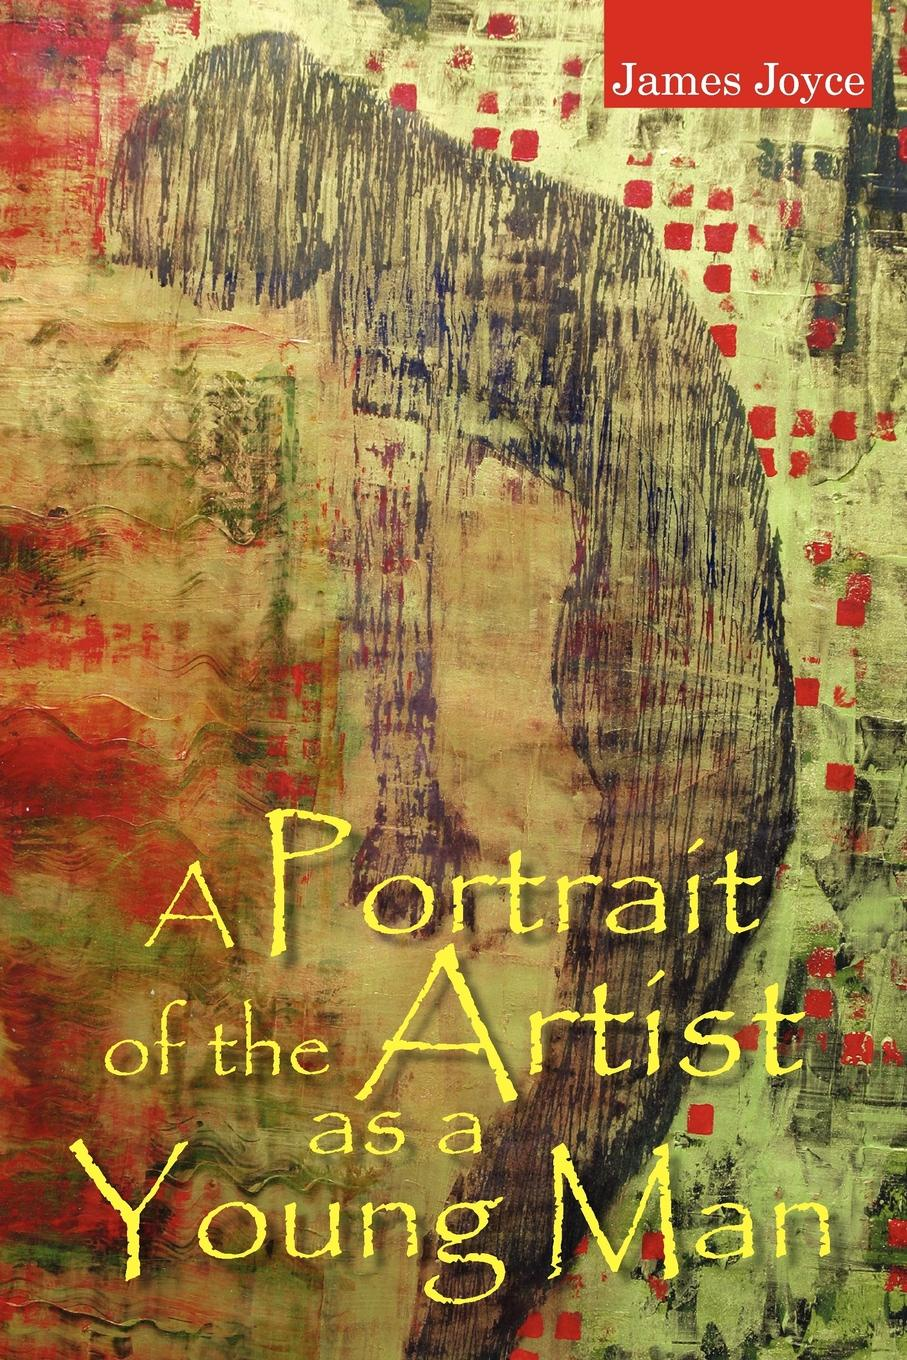 Джеймс Джойс A Portrait of the Artist as a Young Man joyce james a portrait of the artist as a young man